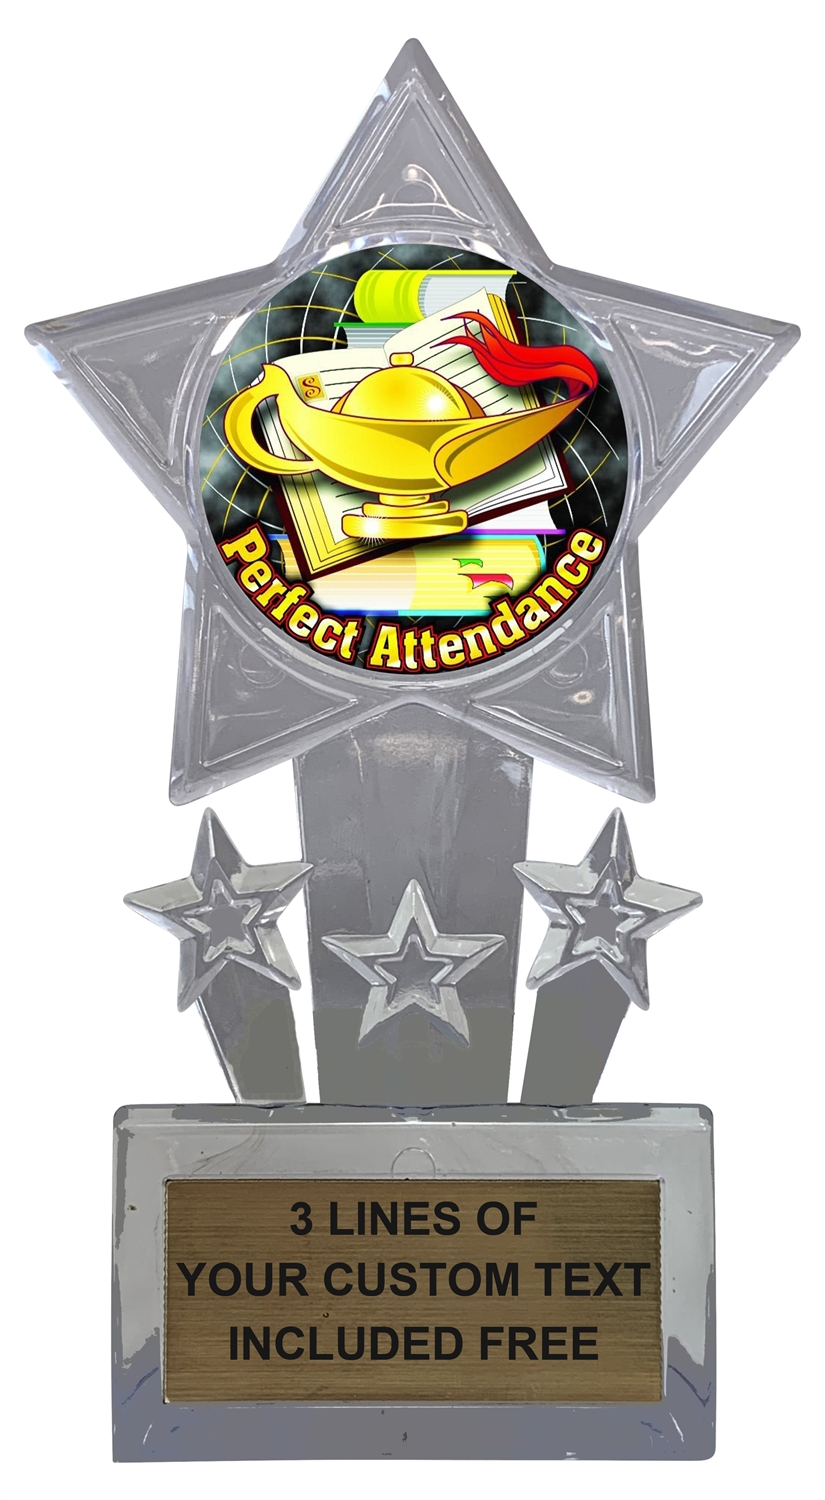 Perfect Attendance Trophy Cup